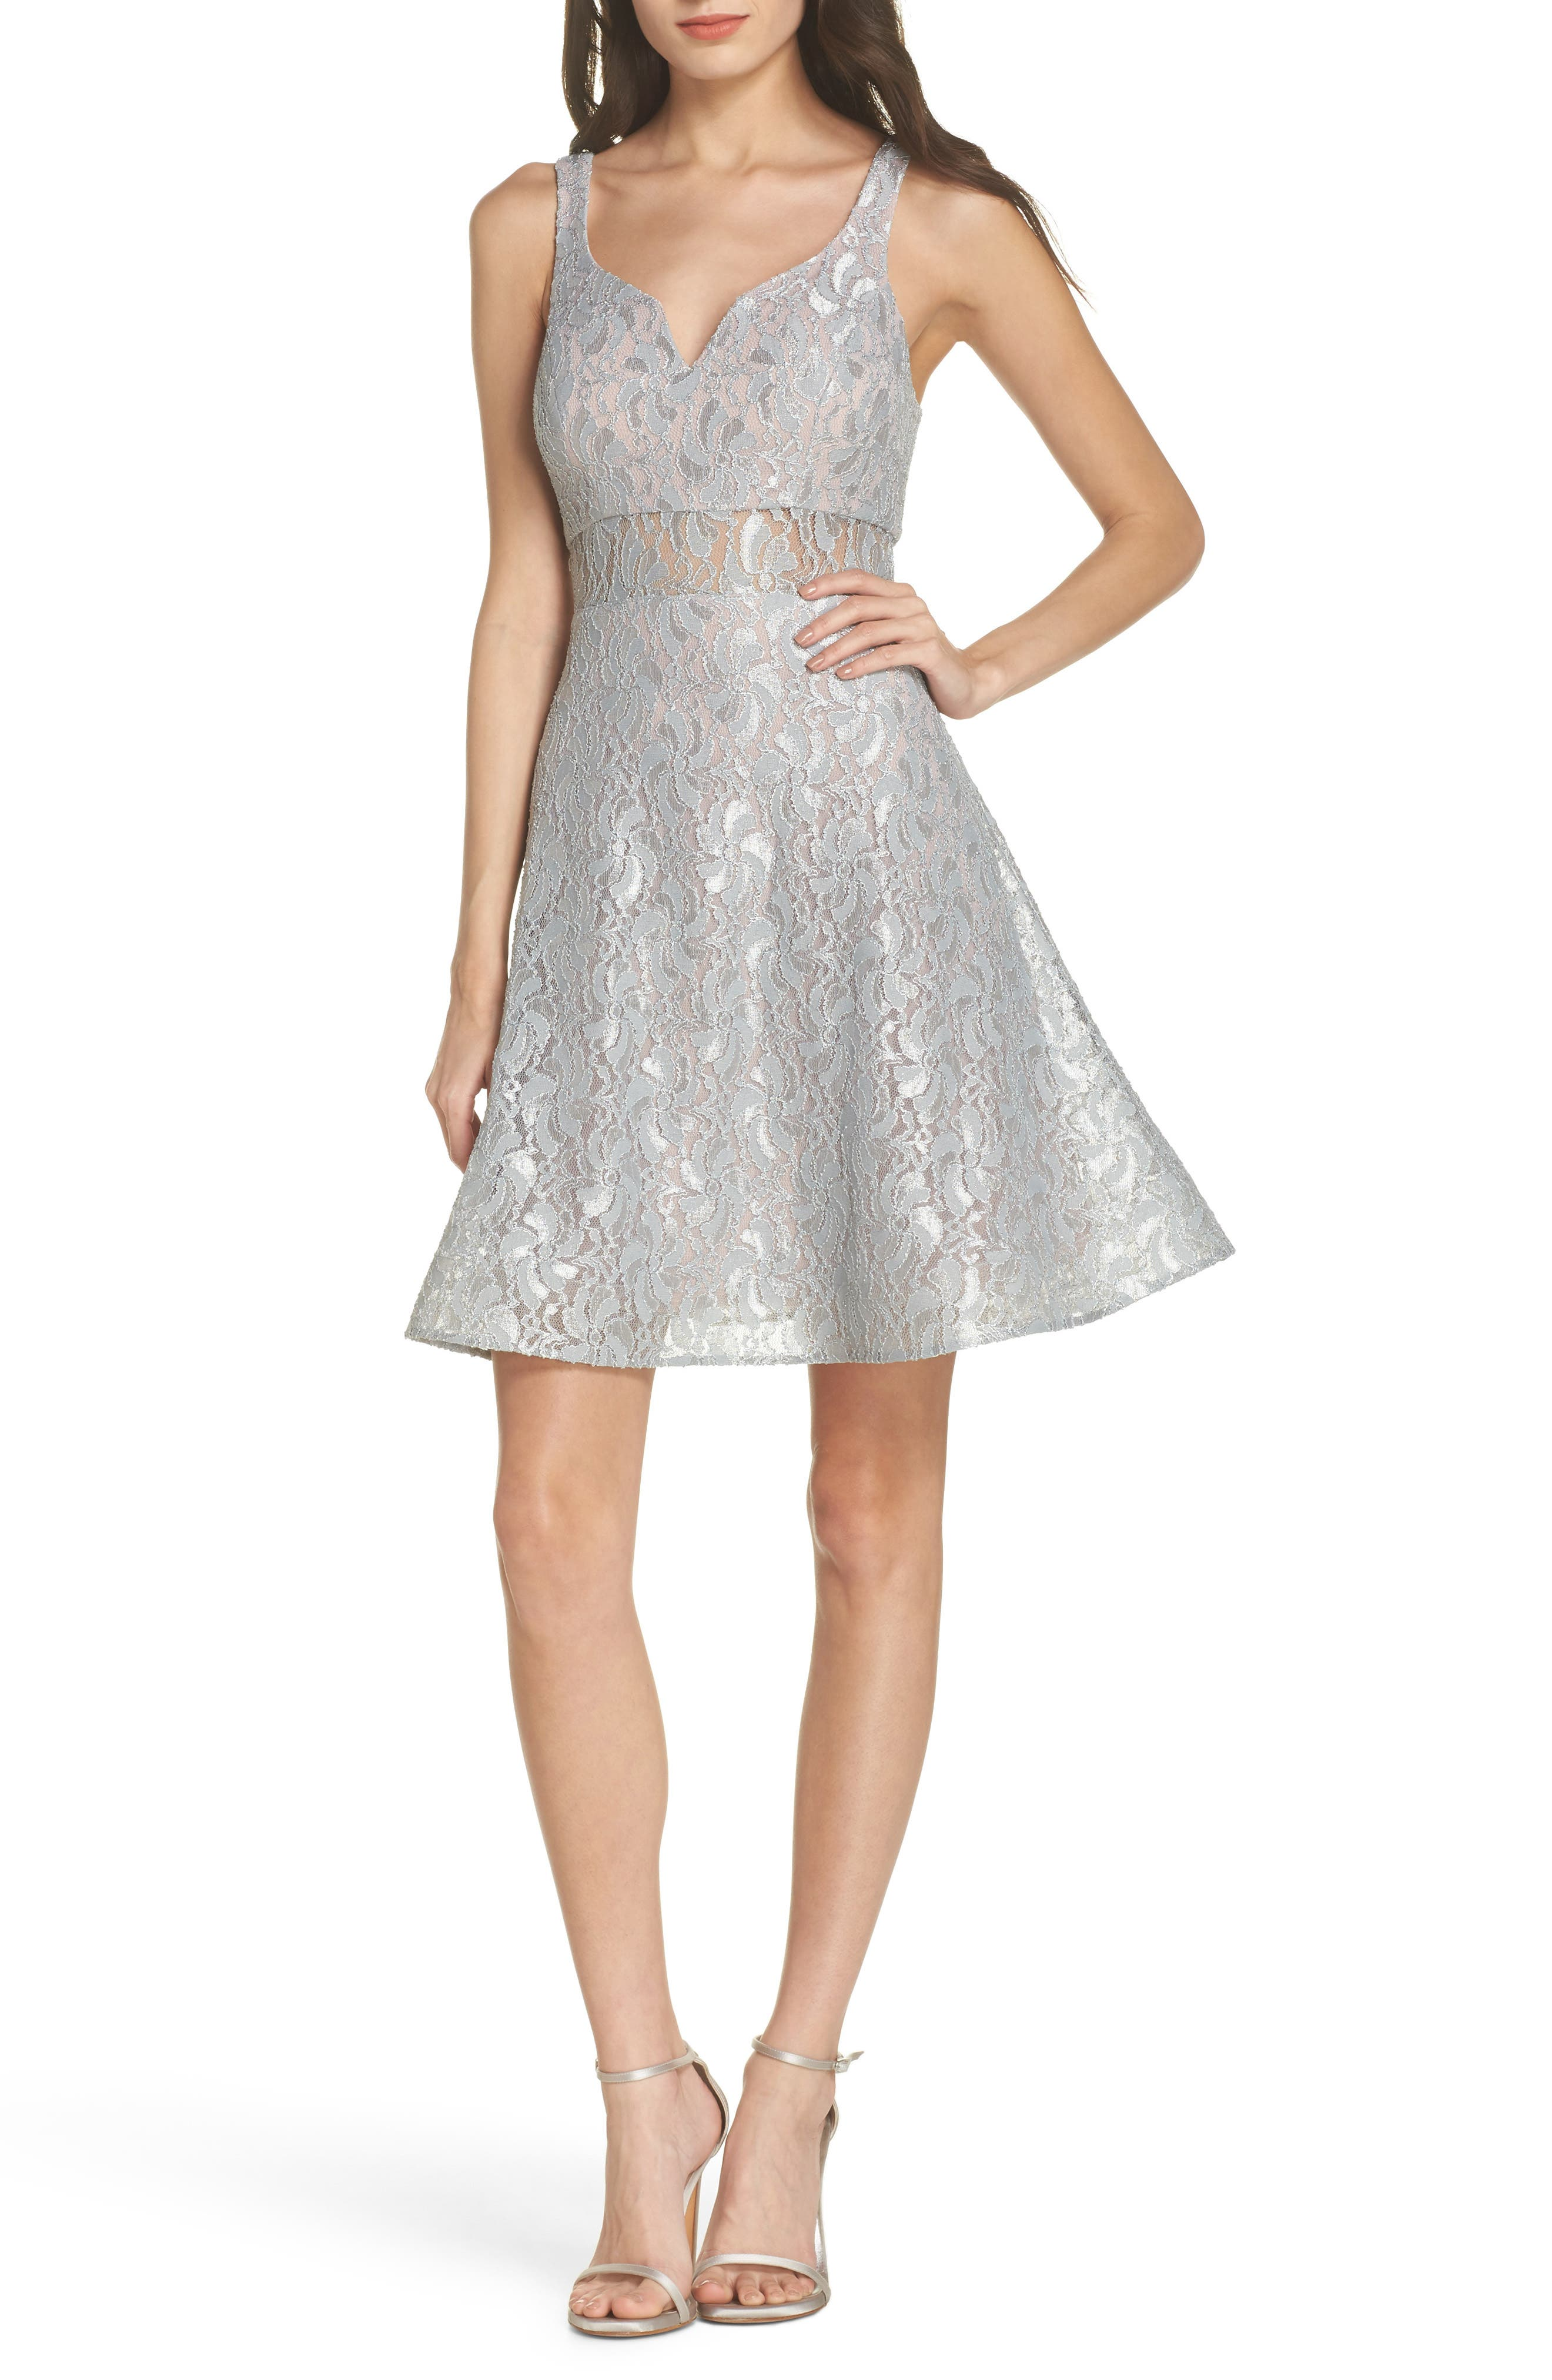 Main Image - Sequin Hearts Illusion Waist Lace Fit & Flare Dress